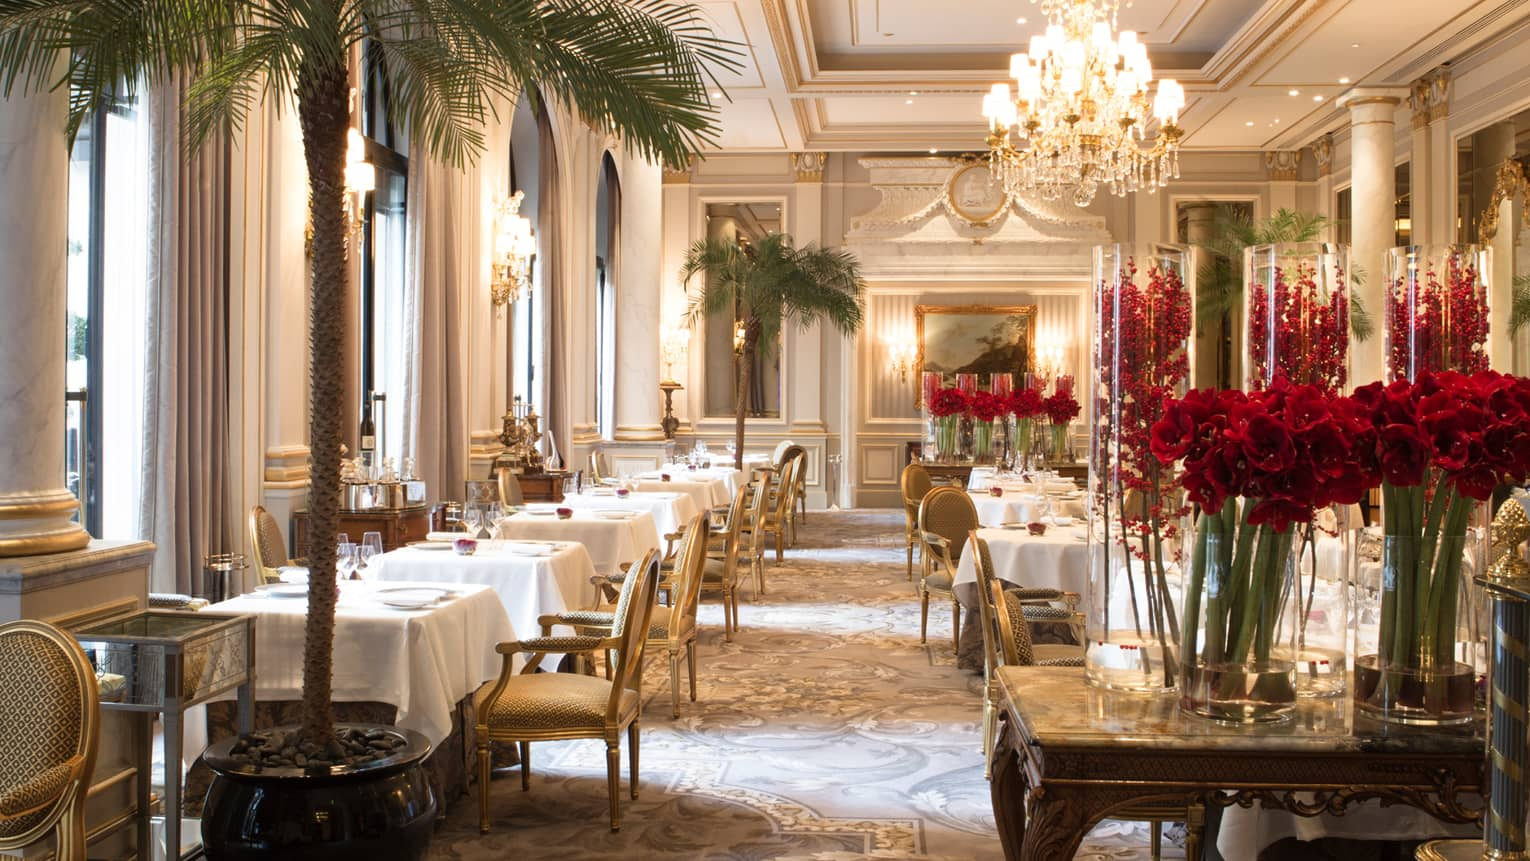 Resto Dans Paris Paris Restaurants Fine Dining Four Seasons Hotel George V Paris